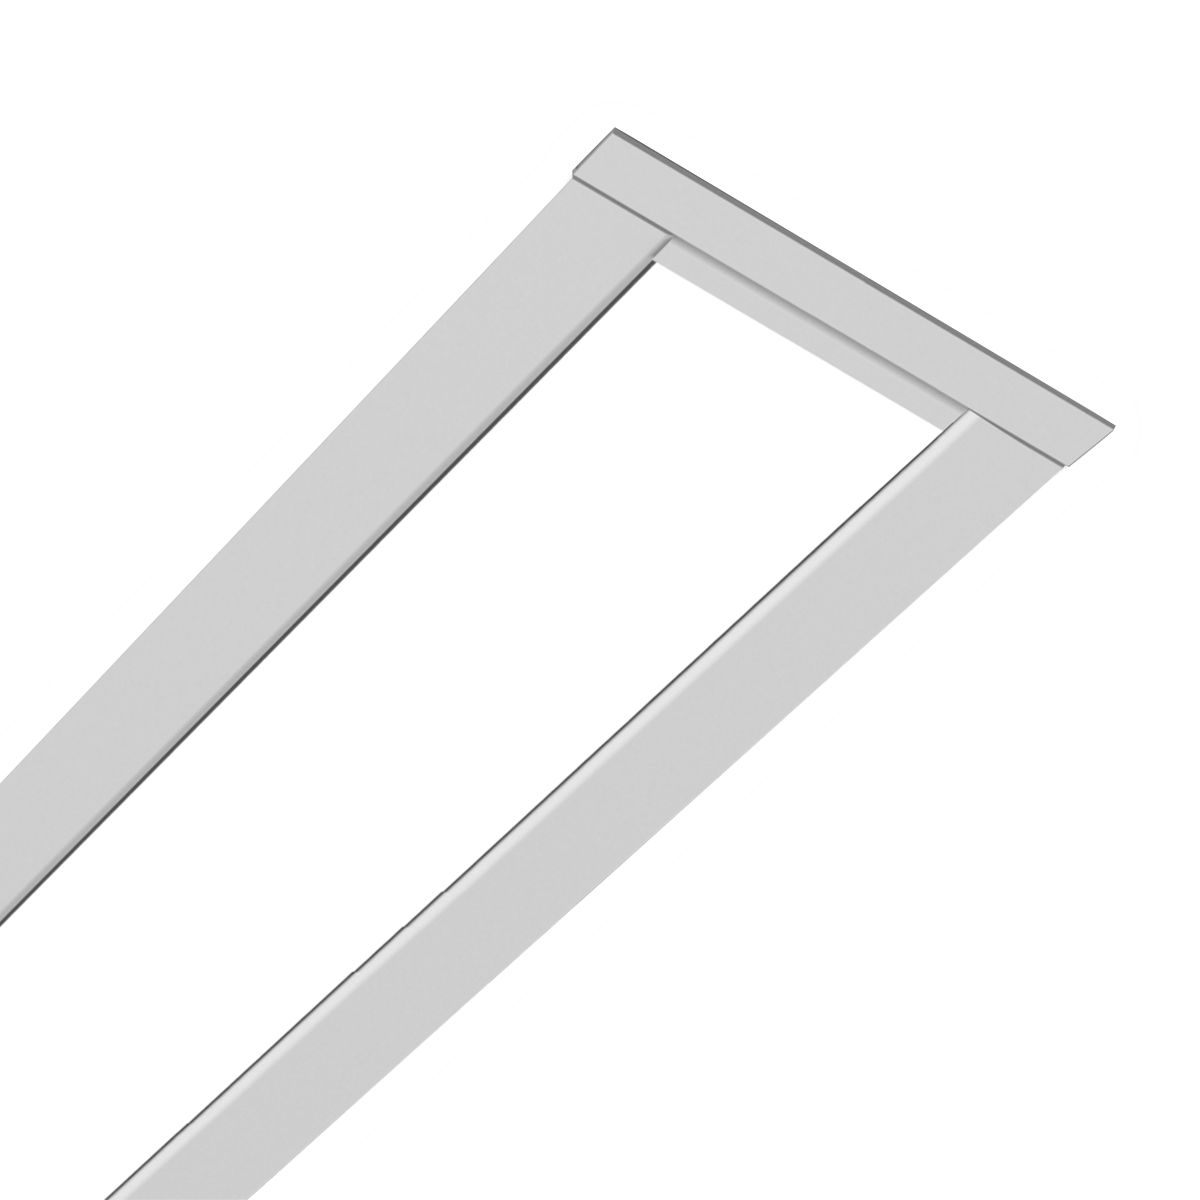 MOD™ 2L LED Recessed Slot | Hubbell Lighting C&I